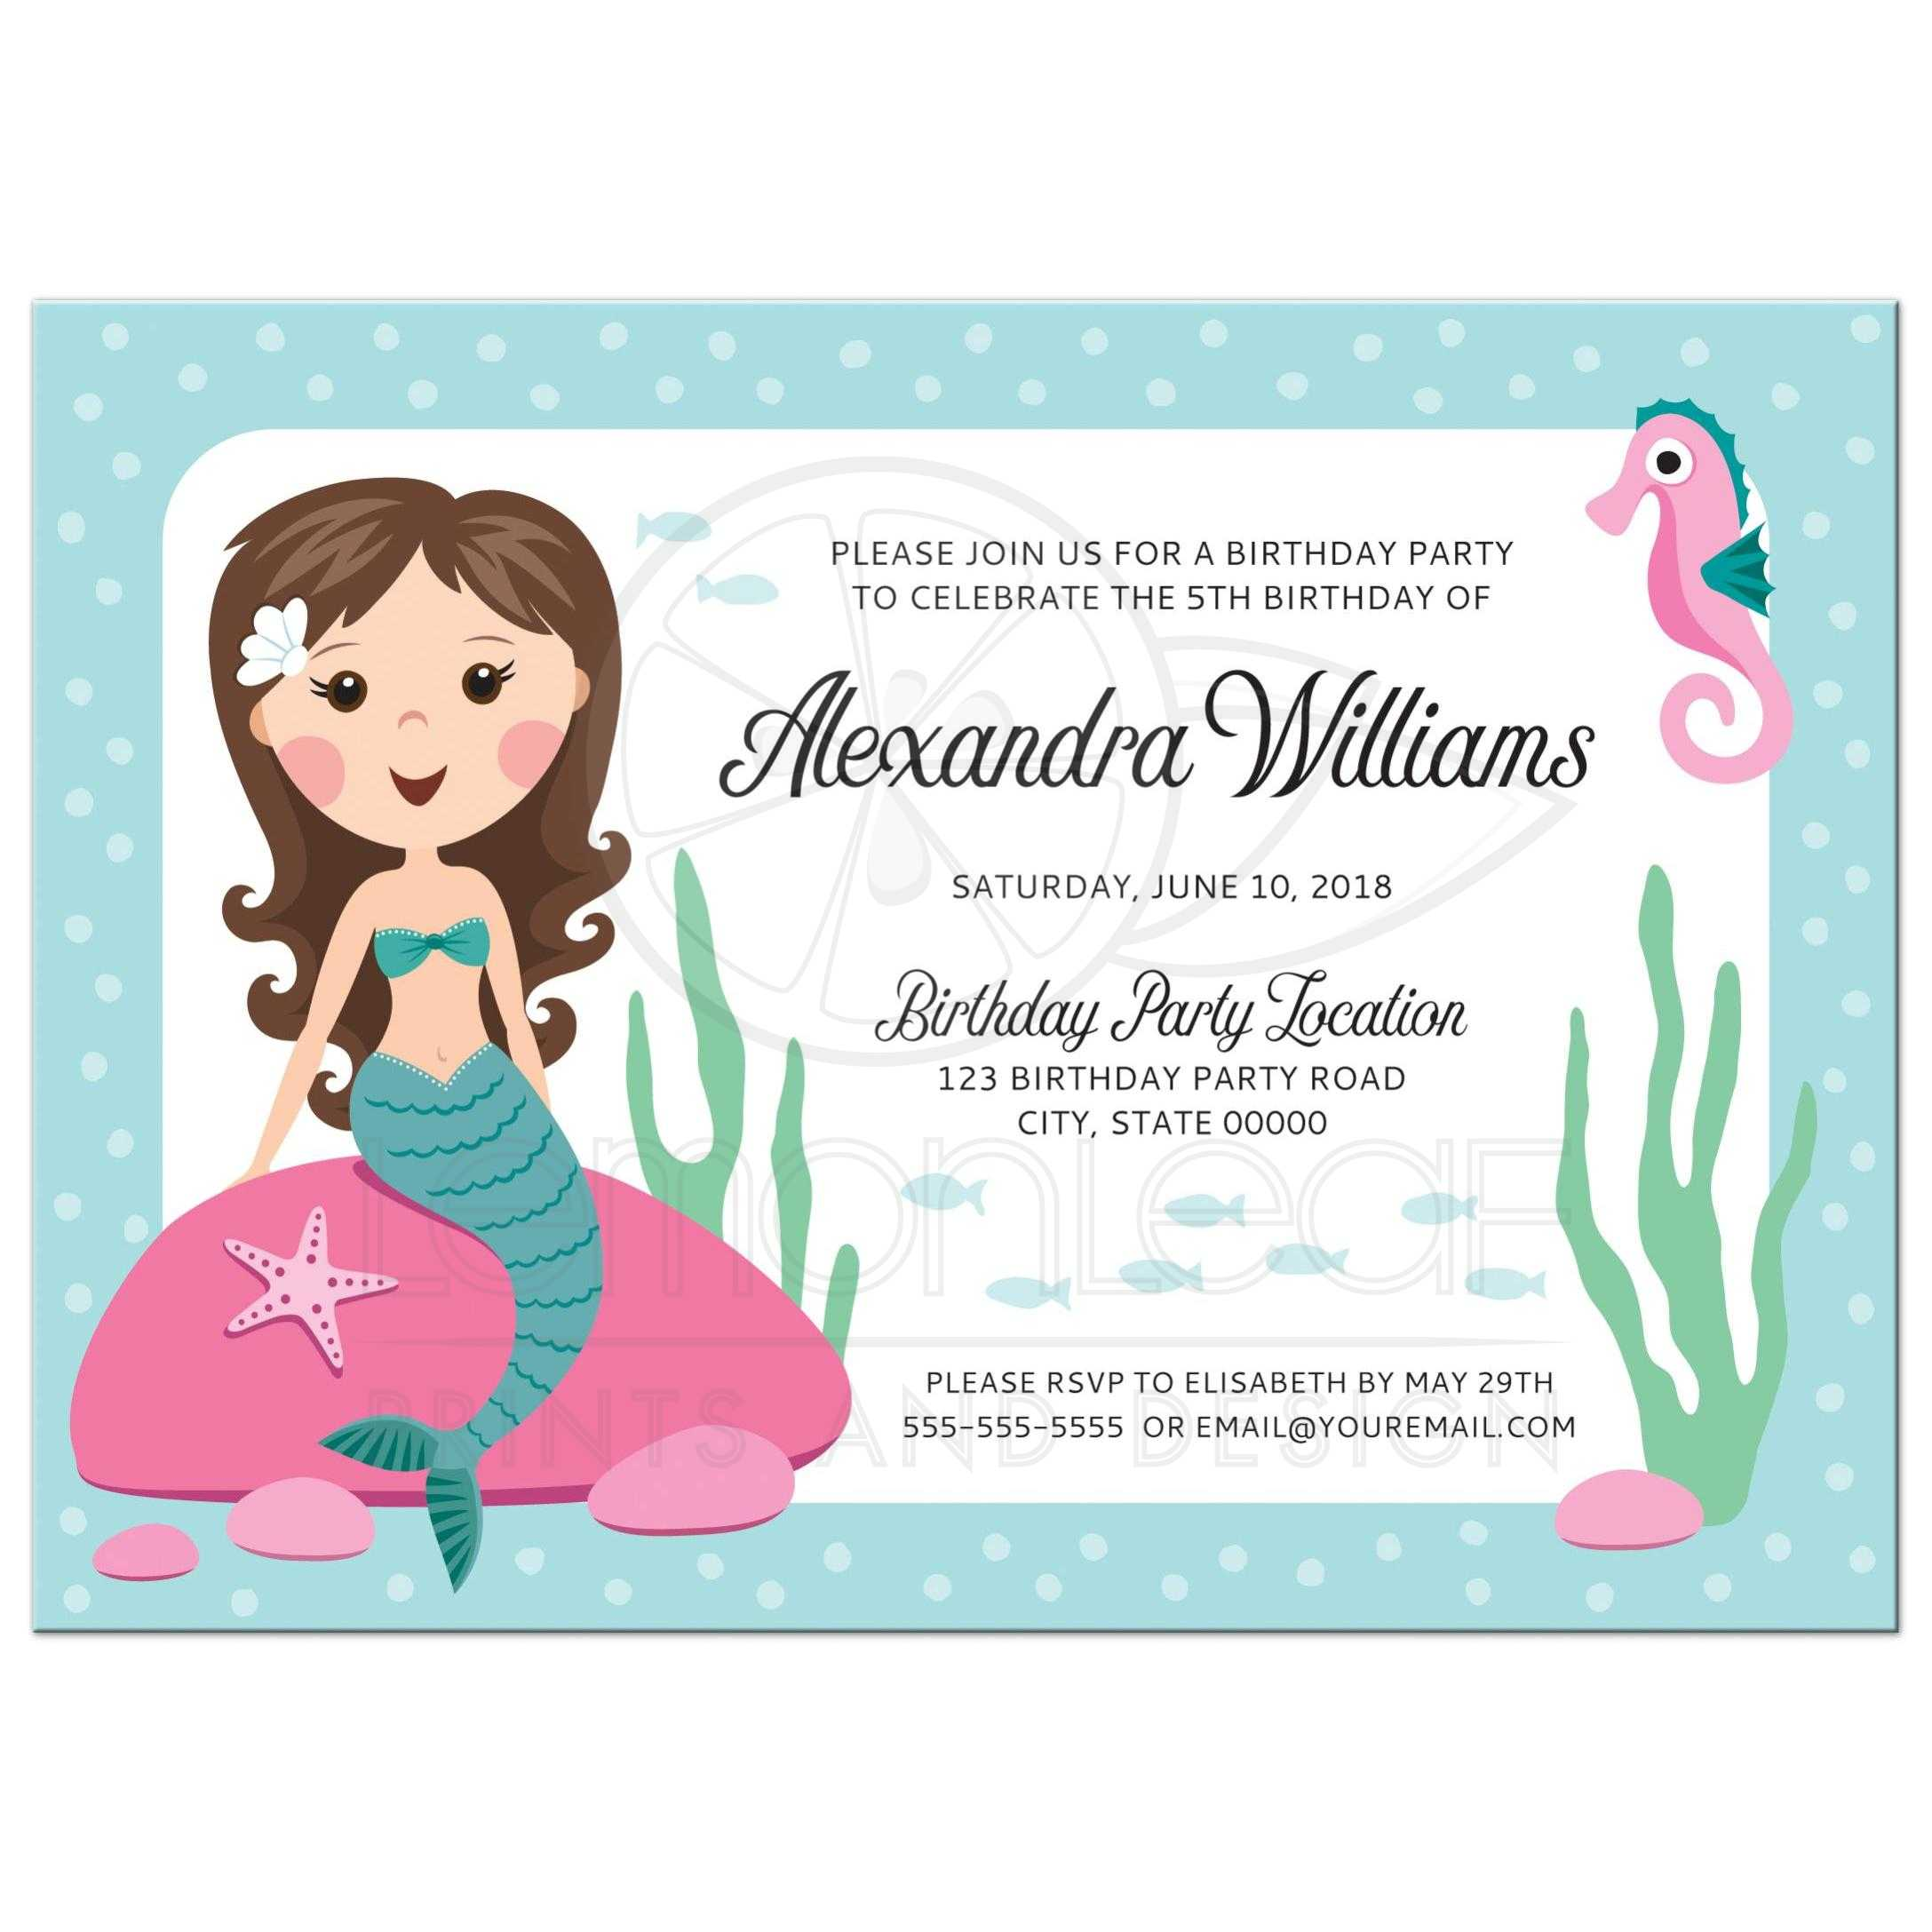 Mermaid birthday party invitation for kids with cute girl sitting on ...